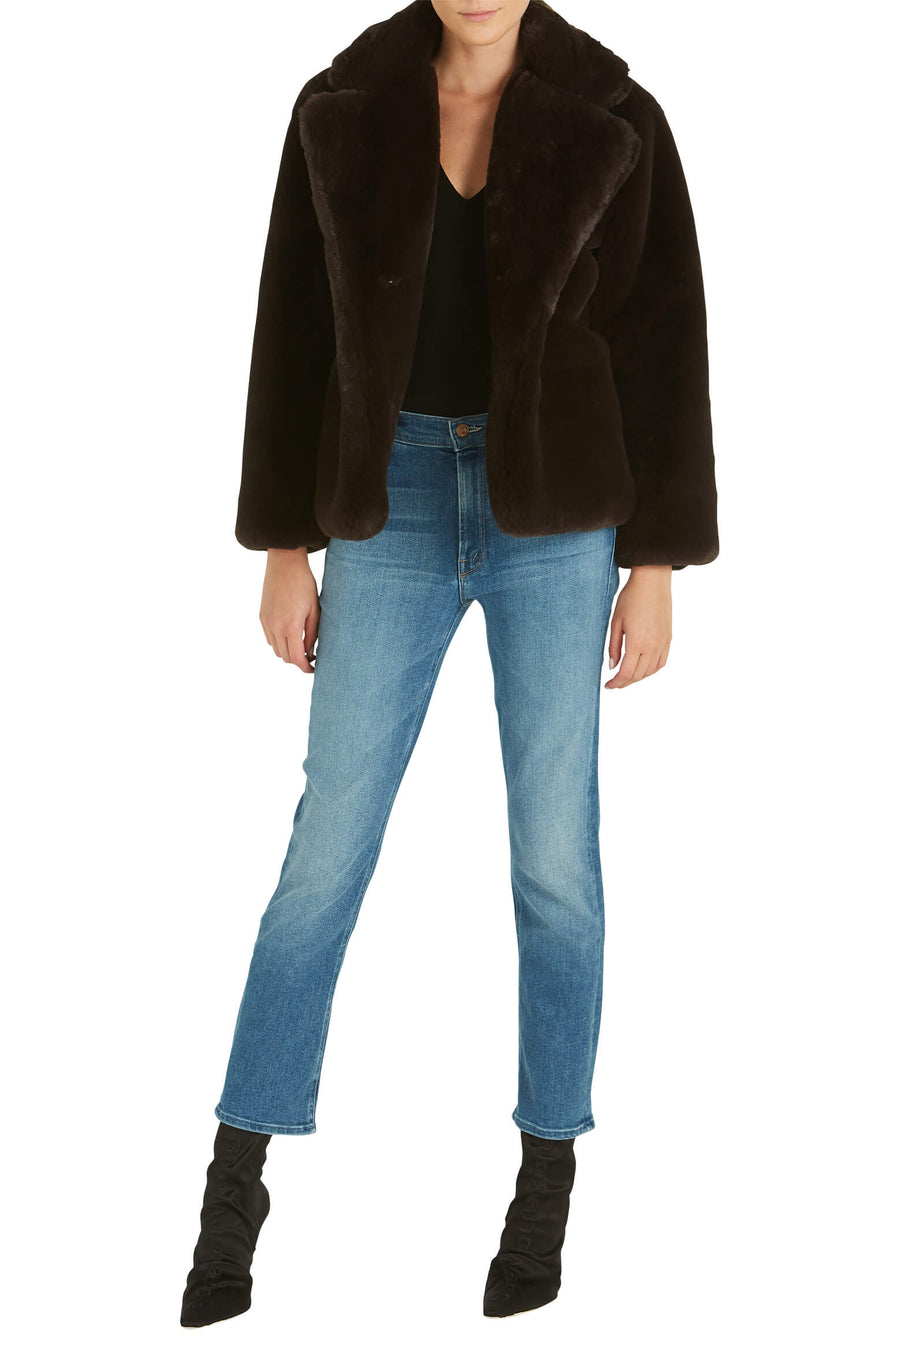 Apparis Manon Faux Fur Jacket in Eboni from The New Trend  Edit alt text